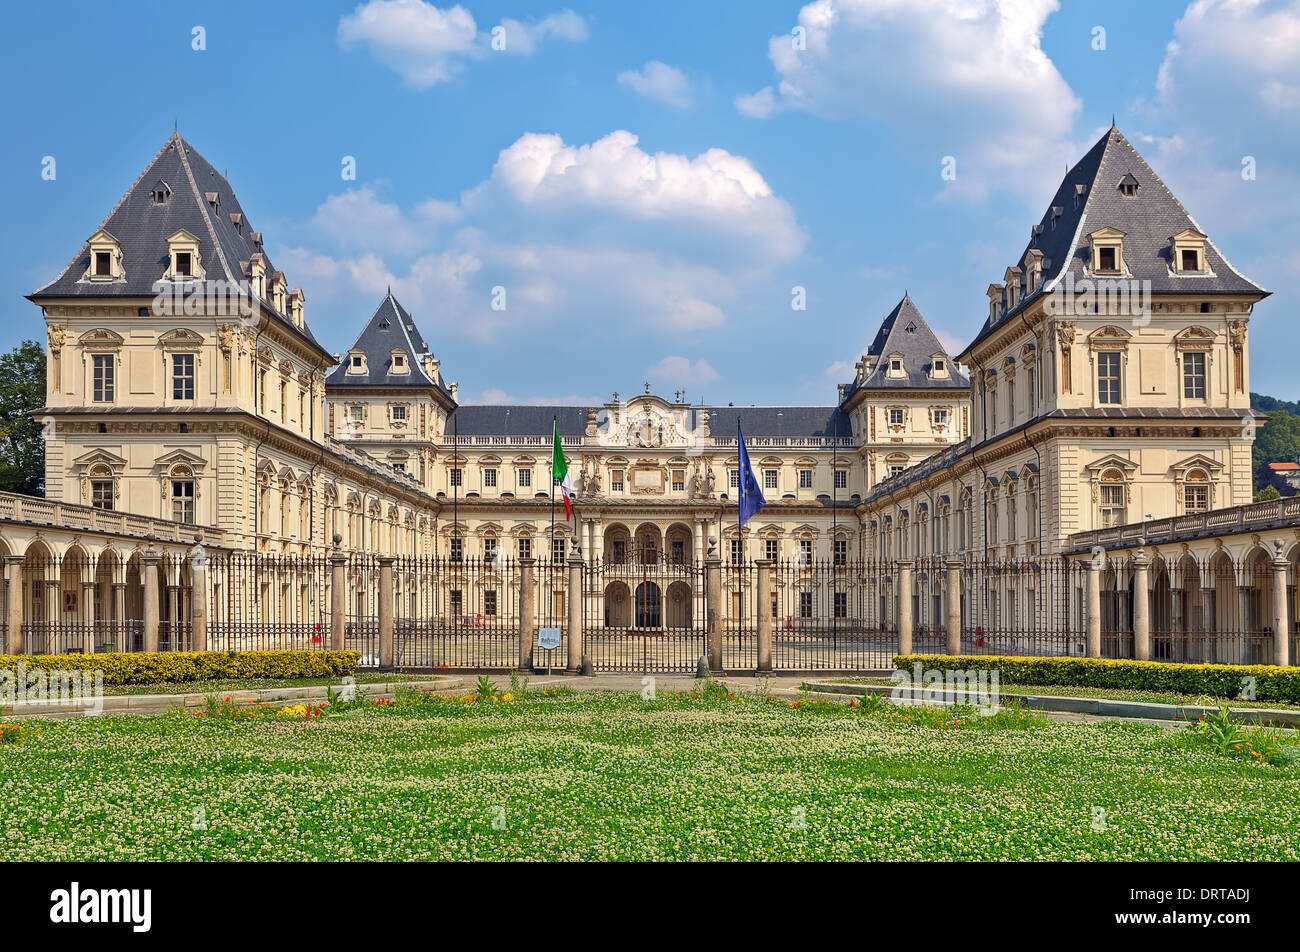 Valentino Castle - former residence of Royal House of Savoy in Turin, Italy. - Stock Image